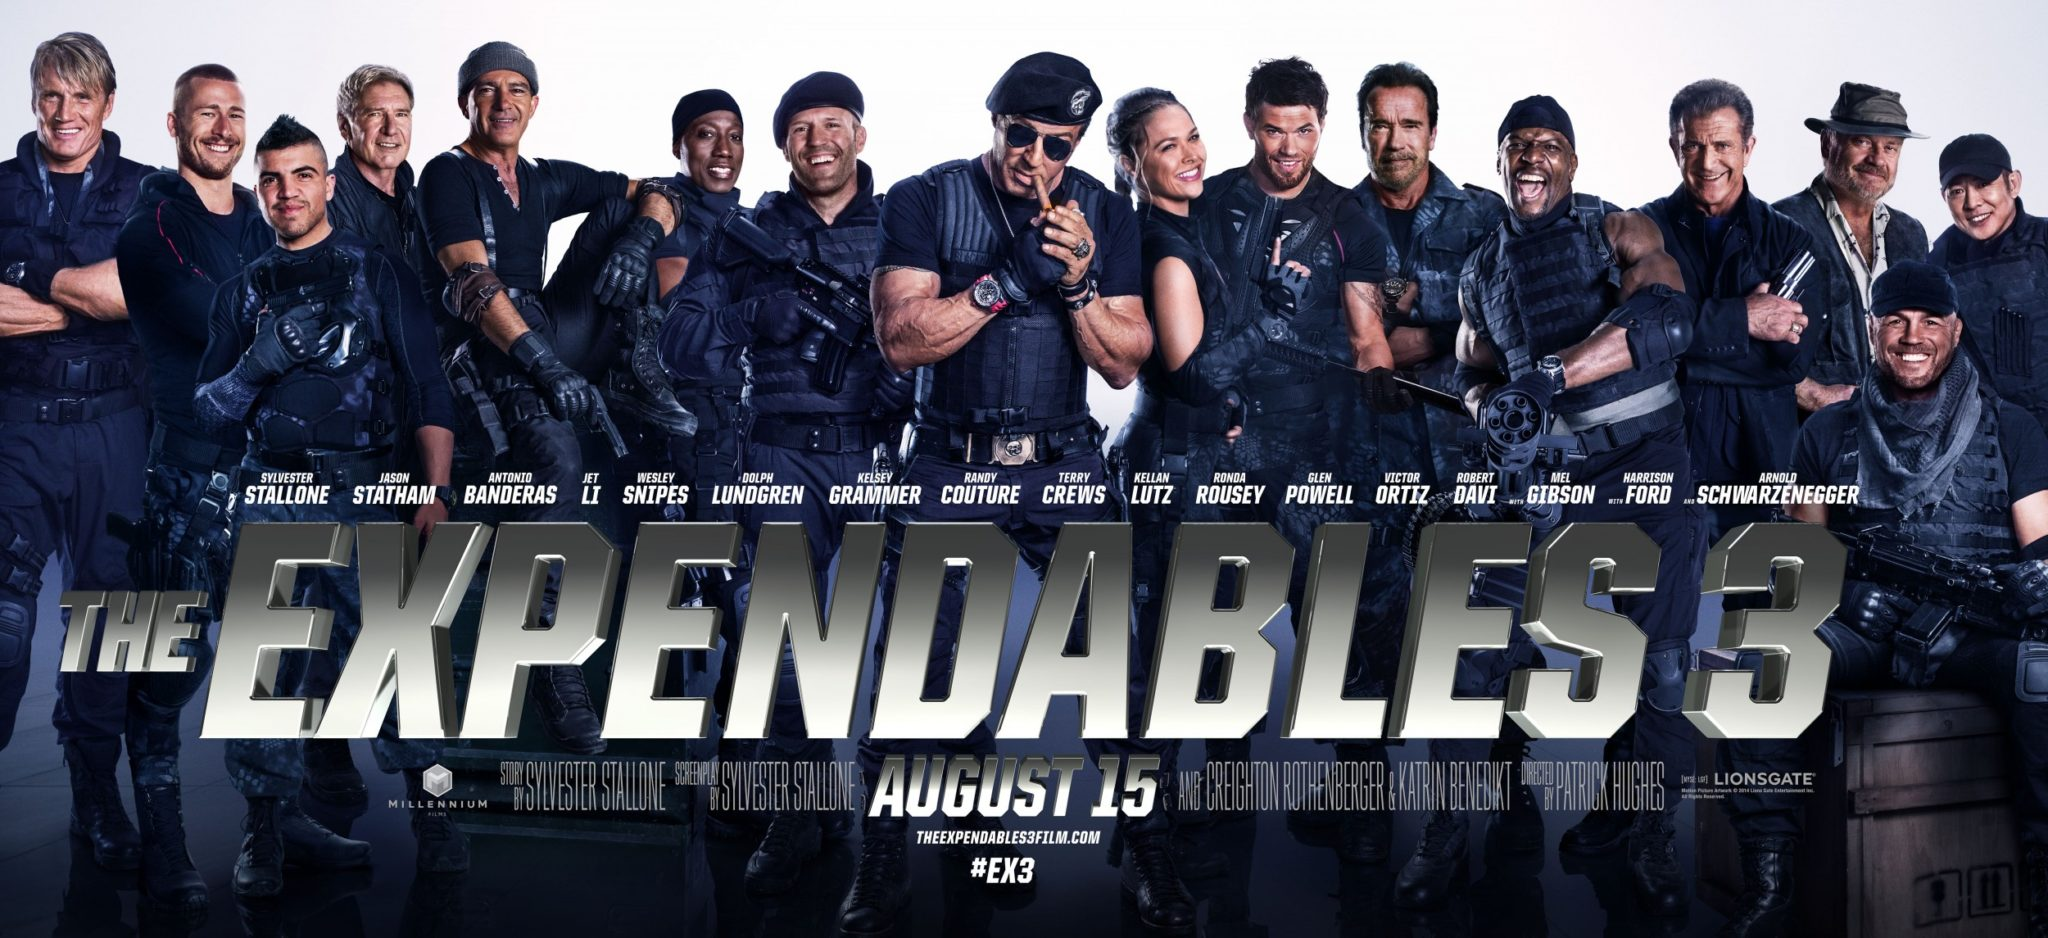 Imagen promocional de Expendables 3, parte de las cintas nominadas a los Razzies 2014. Los Premios Razzie ha anunciado los nominados  a los premios Razzie de 2014, entre los principales nominados están 'Transformers: Age of Extinction', 'A Million Ways to Die' y 'Sex Tape'. Los Premios Razzies 2014 han revelado sus nominados, entre los principales están Transformers: Age of Extinction', 'A Million Ways to Die', 'Sex Tape', 'Saving Christmas de Kirk Cameron', 'Noah' y 'Left Behind' de Nicolas Cage.